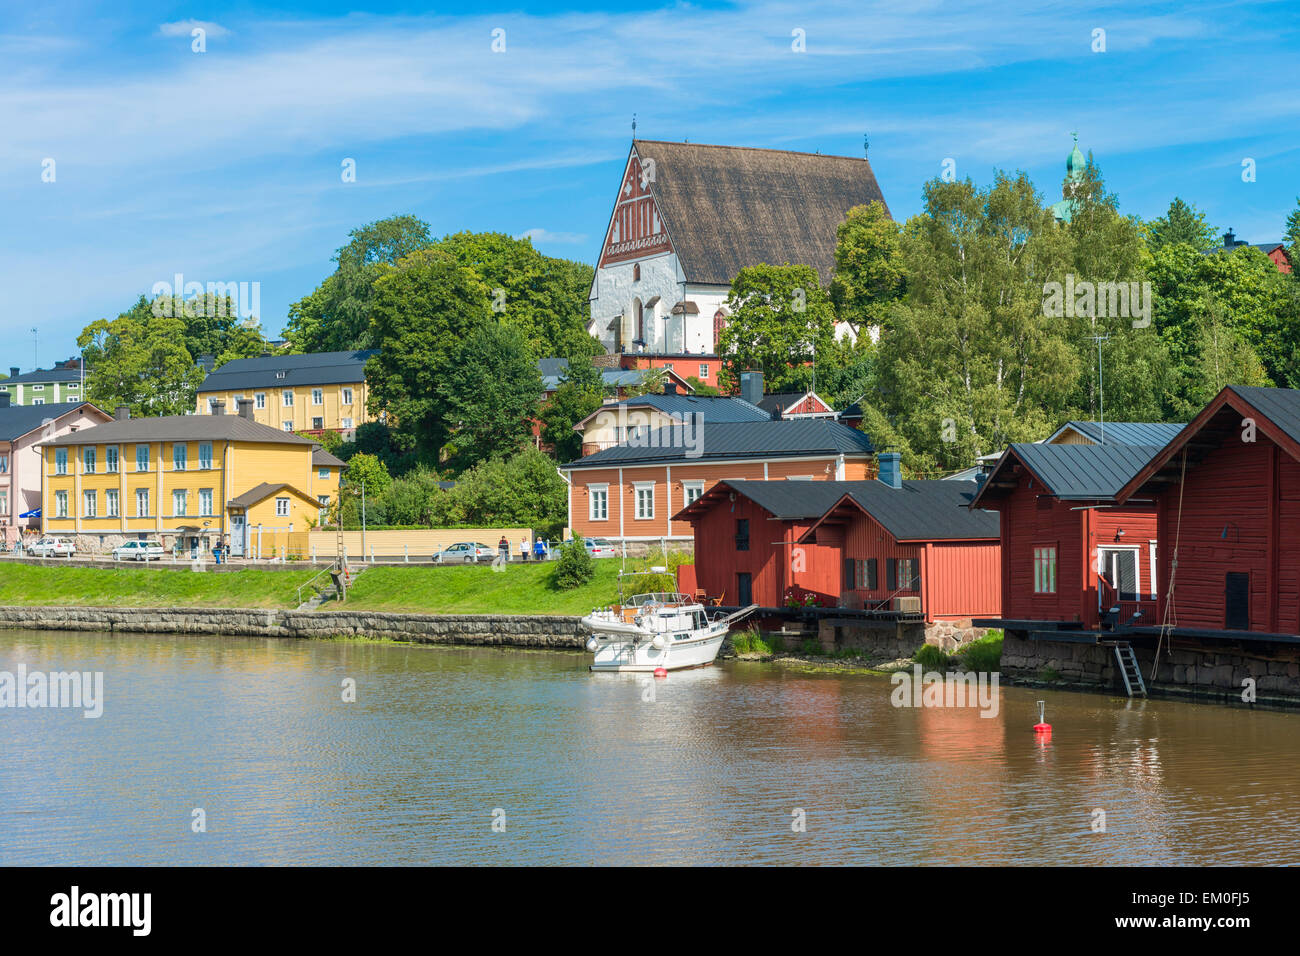 Riverside buildings and Cathedral in the medieval city of Porvoo, Finland. - Stock Image